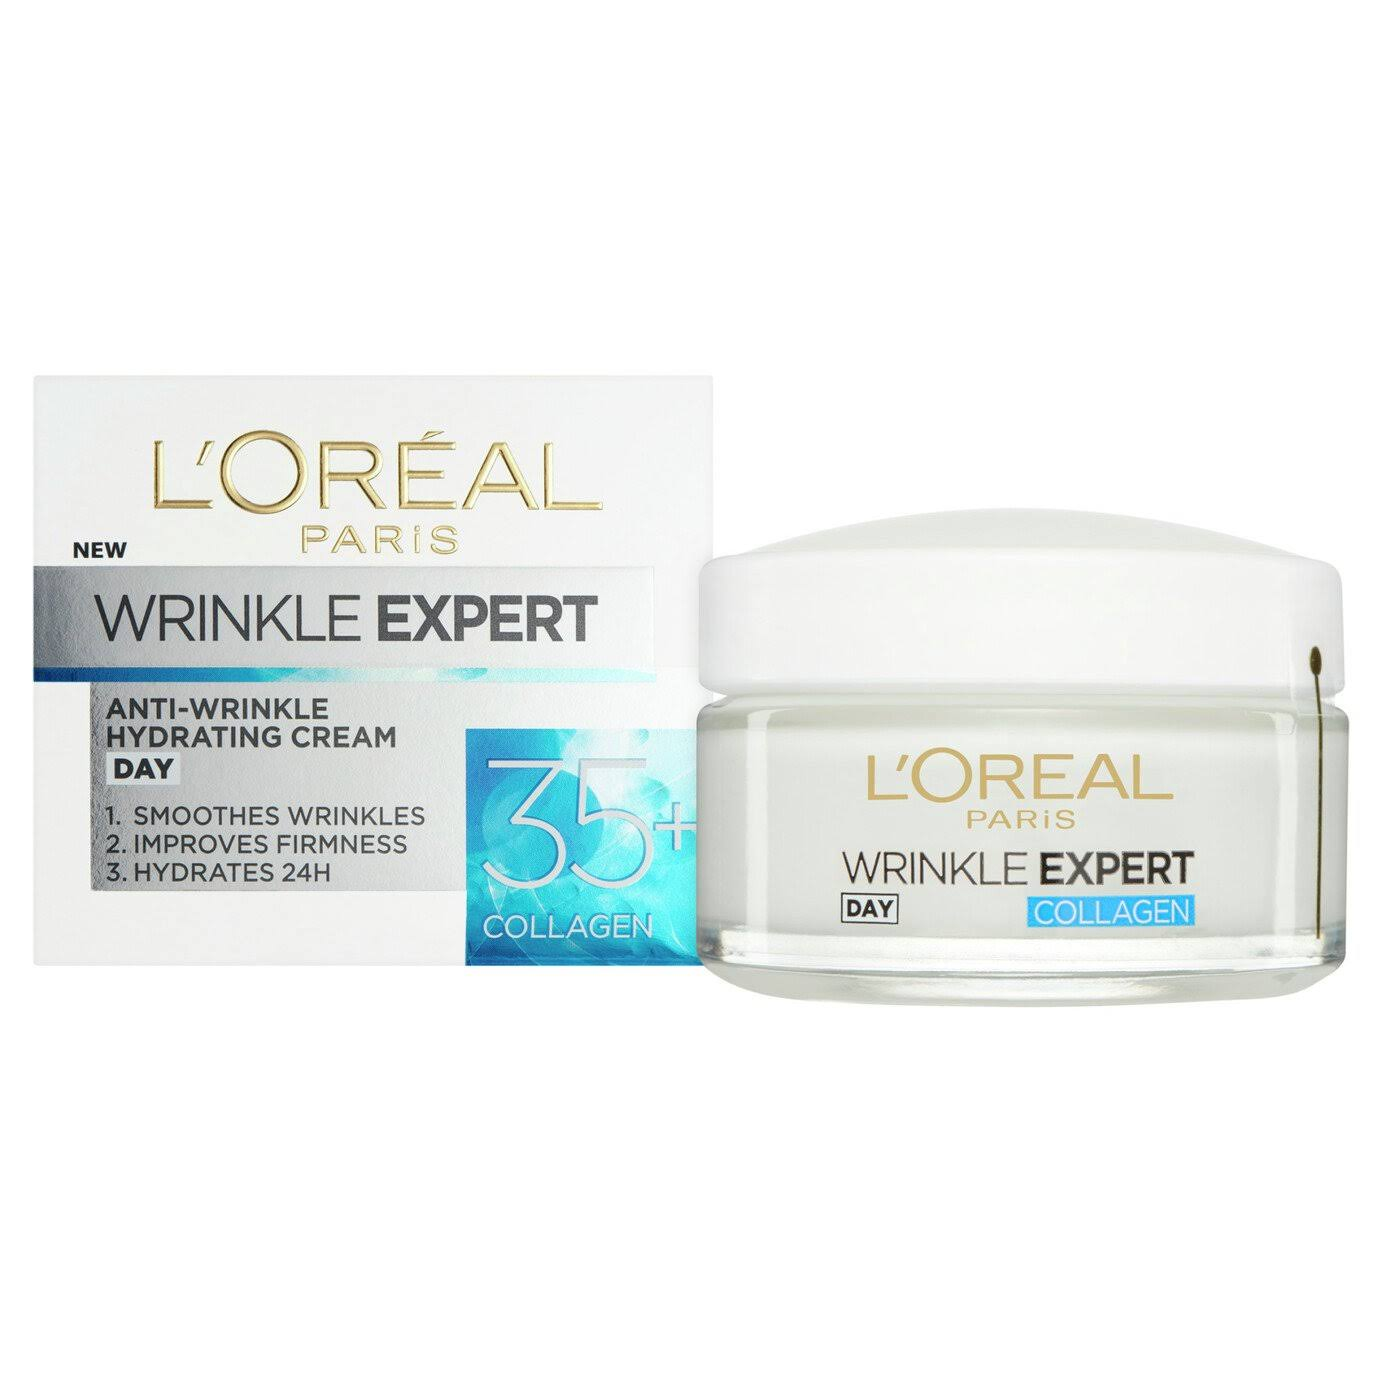 L'Oreal Paris Wrinkle Expert - 50ml